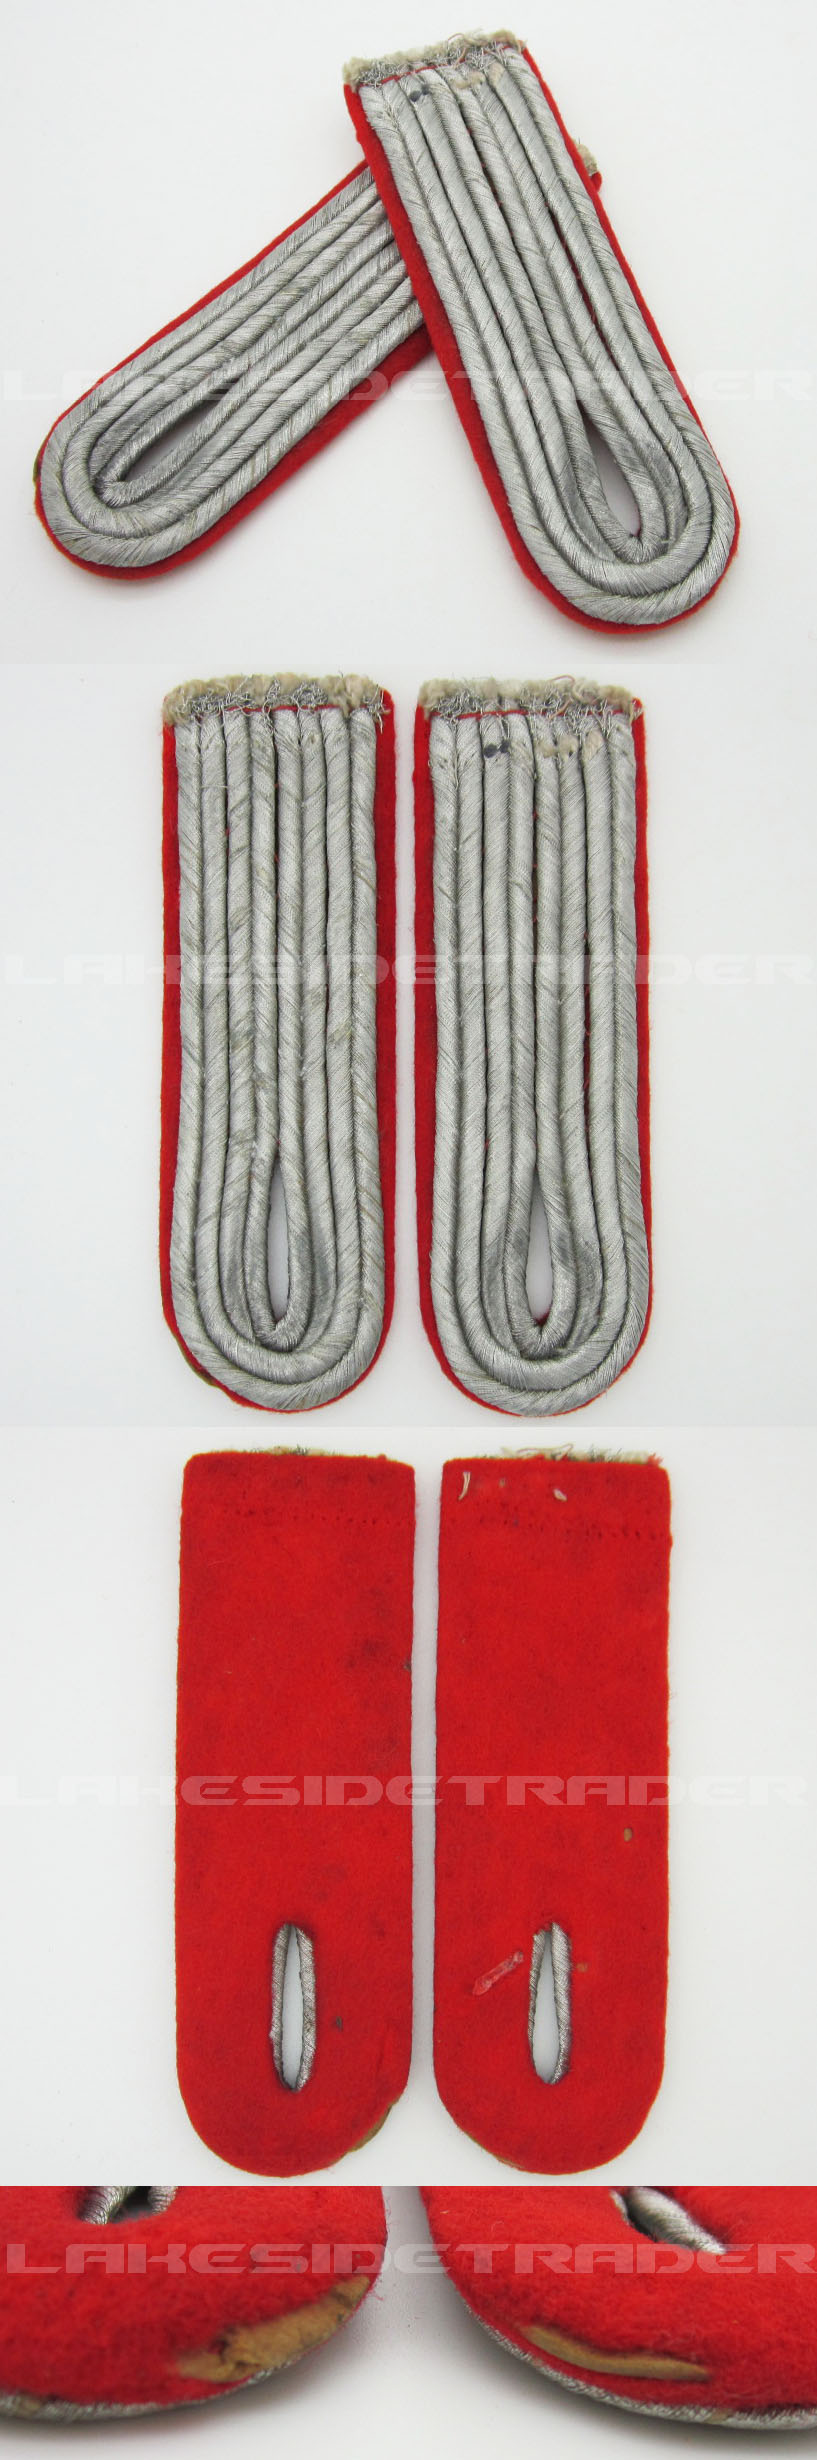 Luftwaffe Flak Artillery Leutnants Shoulder Boards